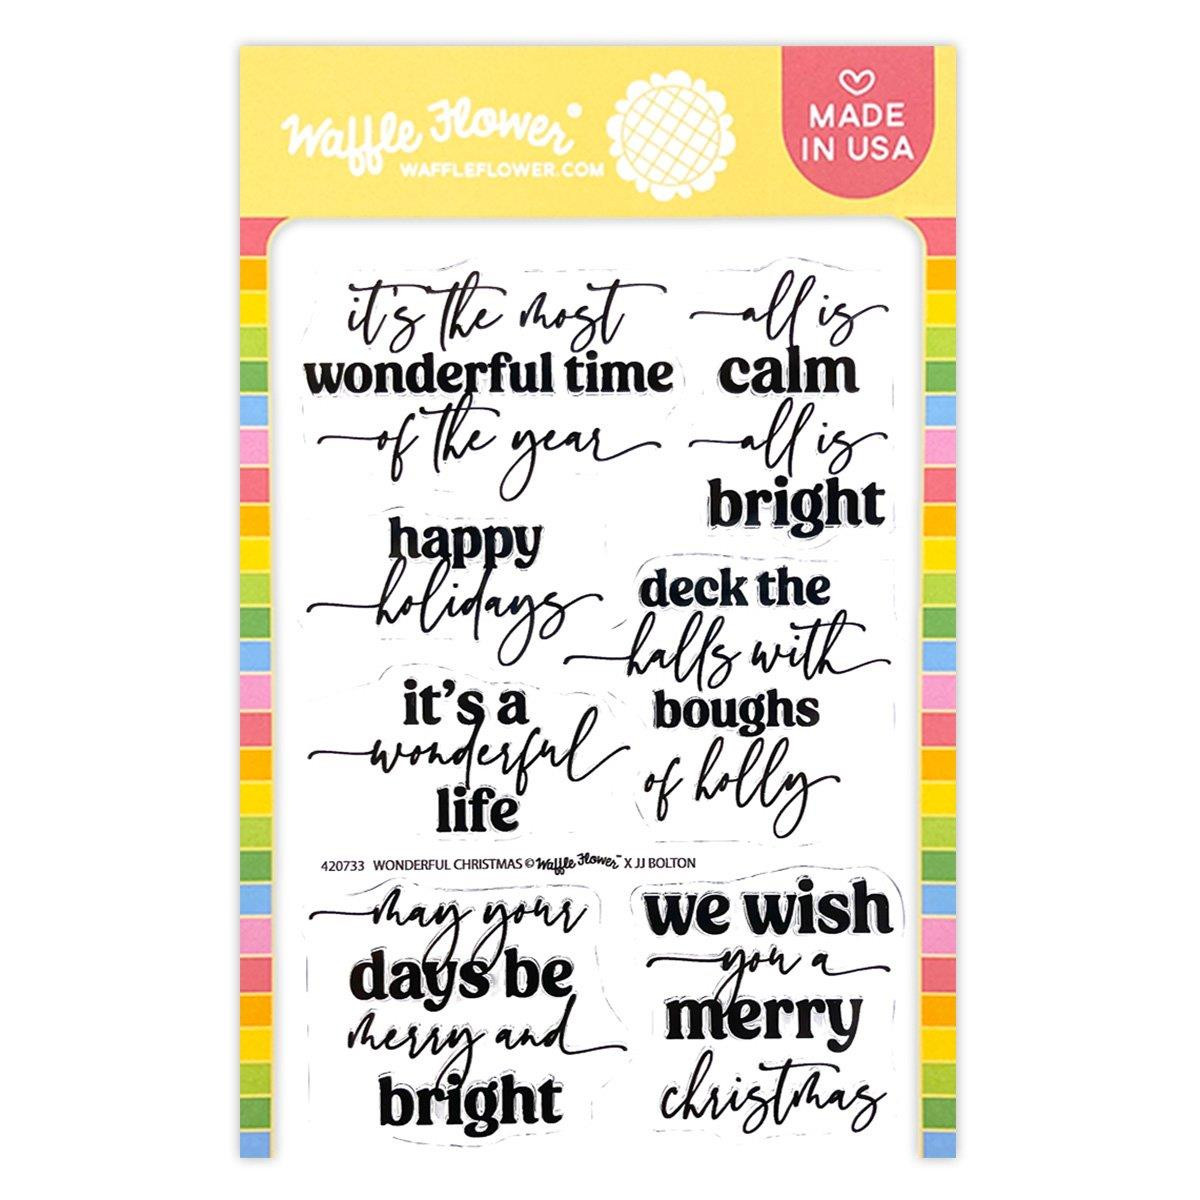 Wonderful Christmas, Waffle Flower Clear Stamps -